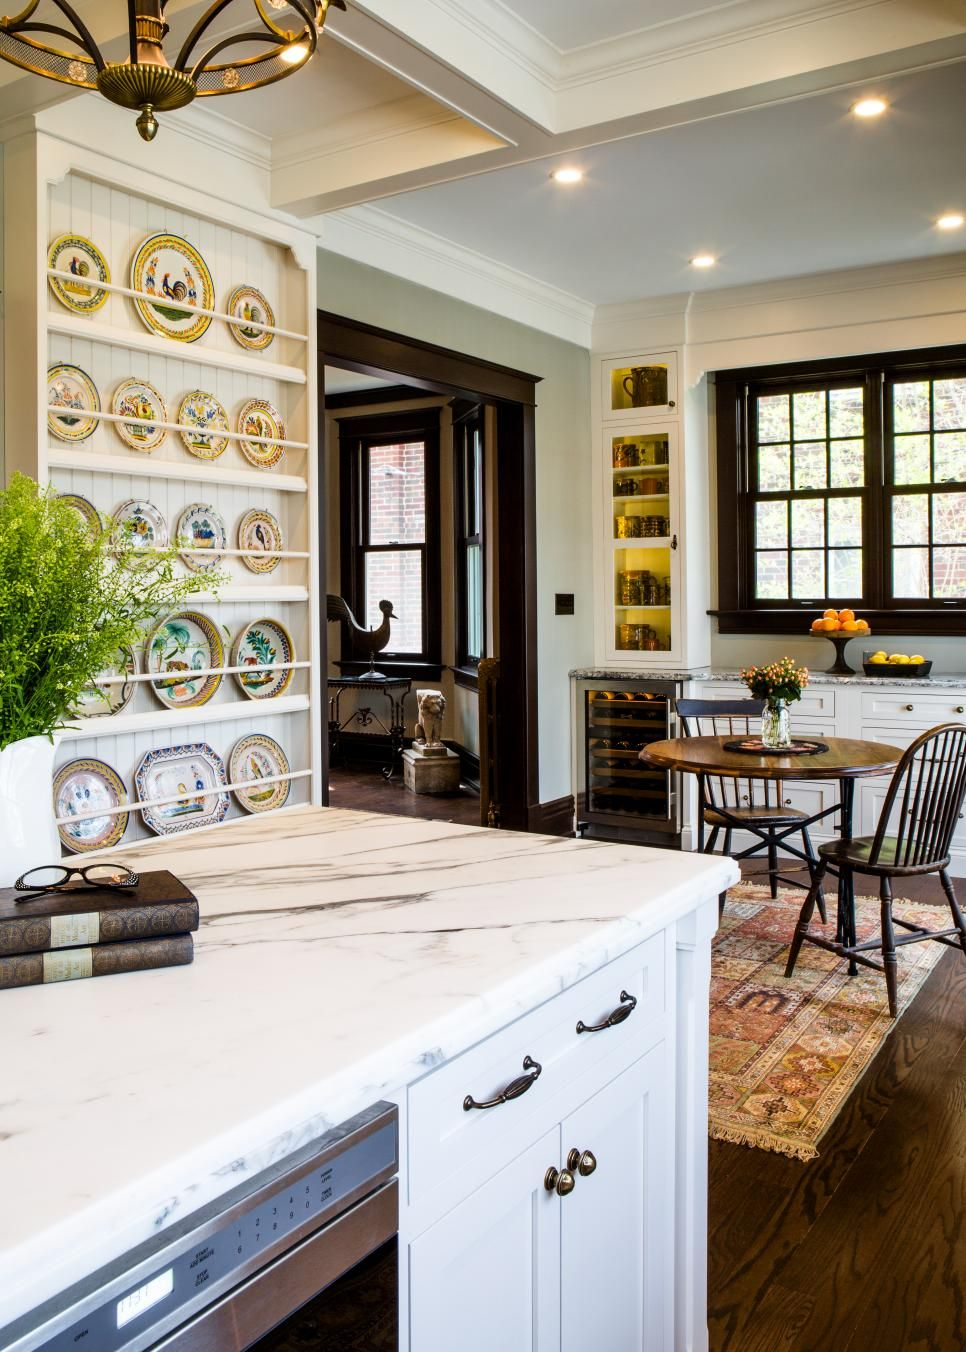 Awesome Two Different Shaped Chairs Sit At A Simple, Round Wooden Dining Table. A  Built In Shelf Structure Displays An Elegant Plate ... Amazing Ideas